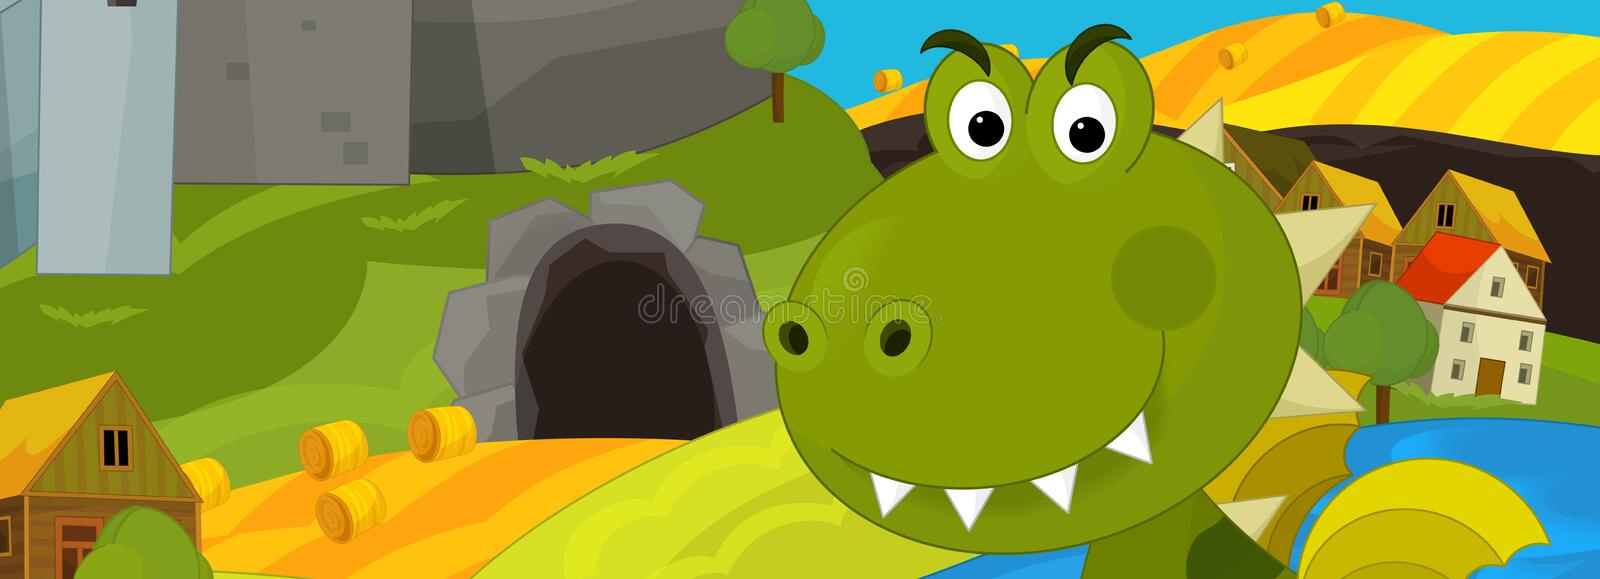 Cartoon happy scene - green dragon is going to eat something - man is watching from the hiding place royalty free illustration